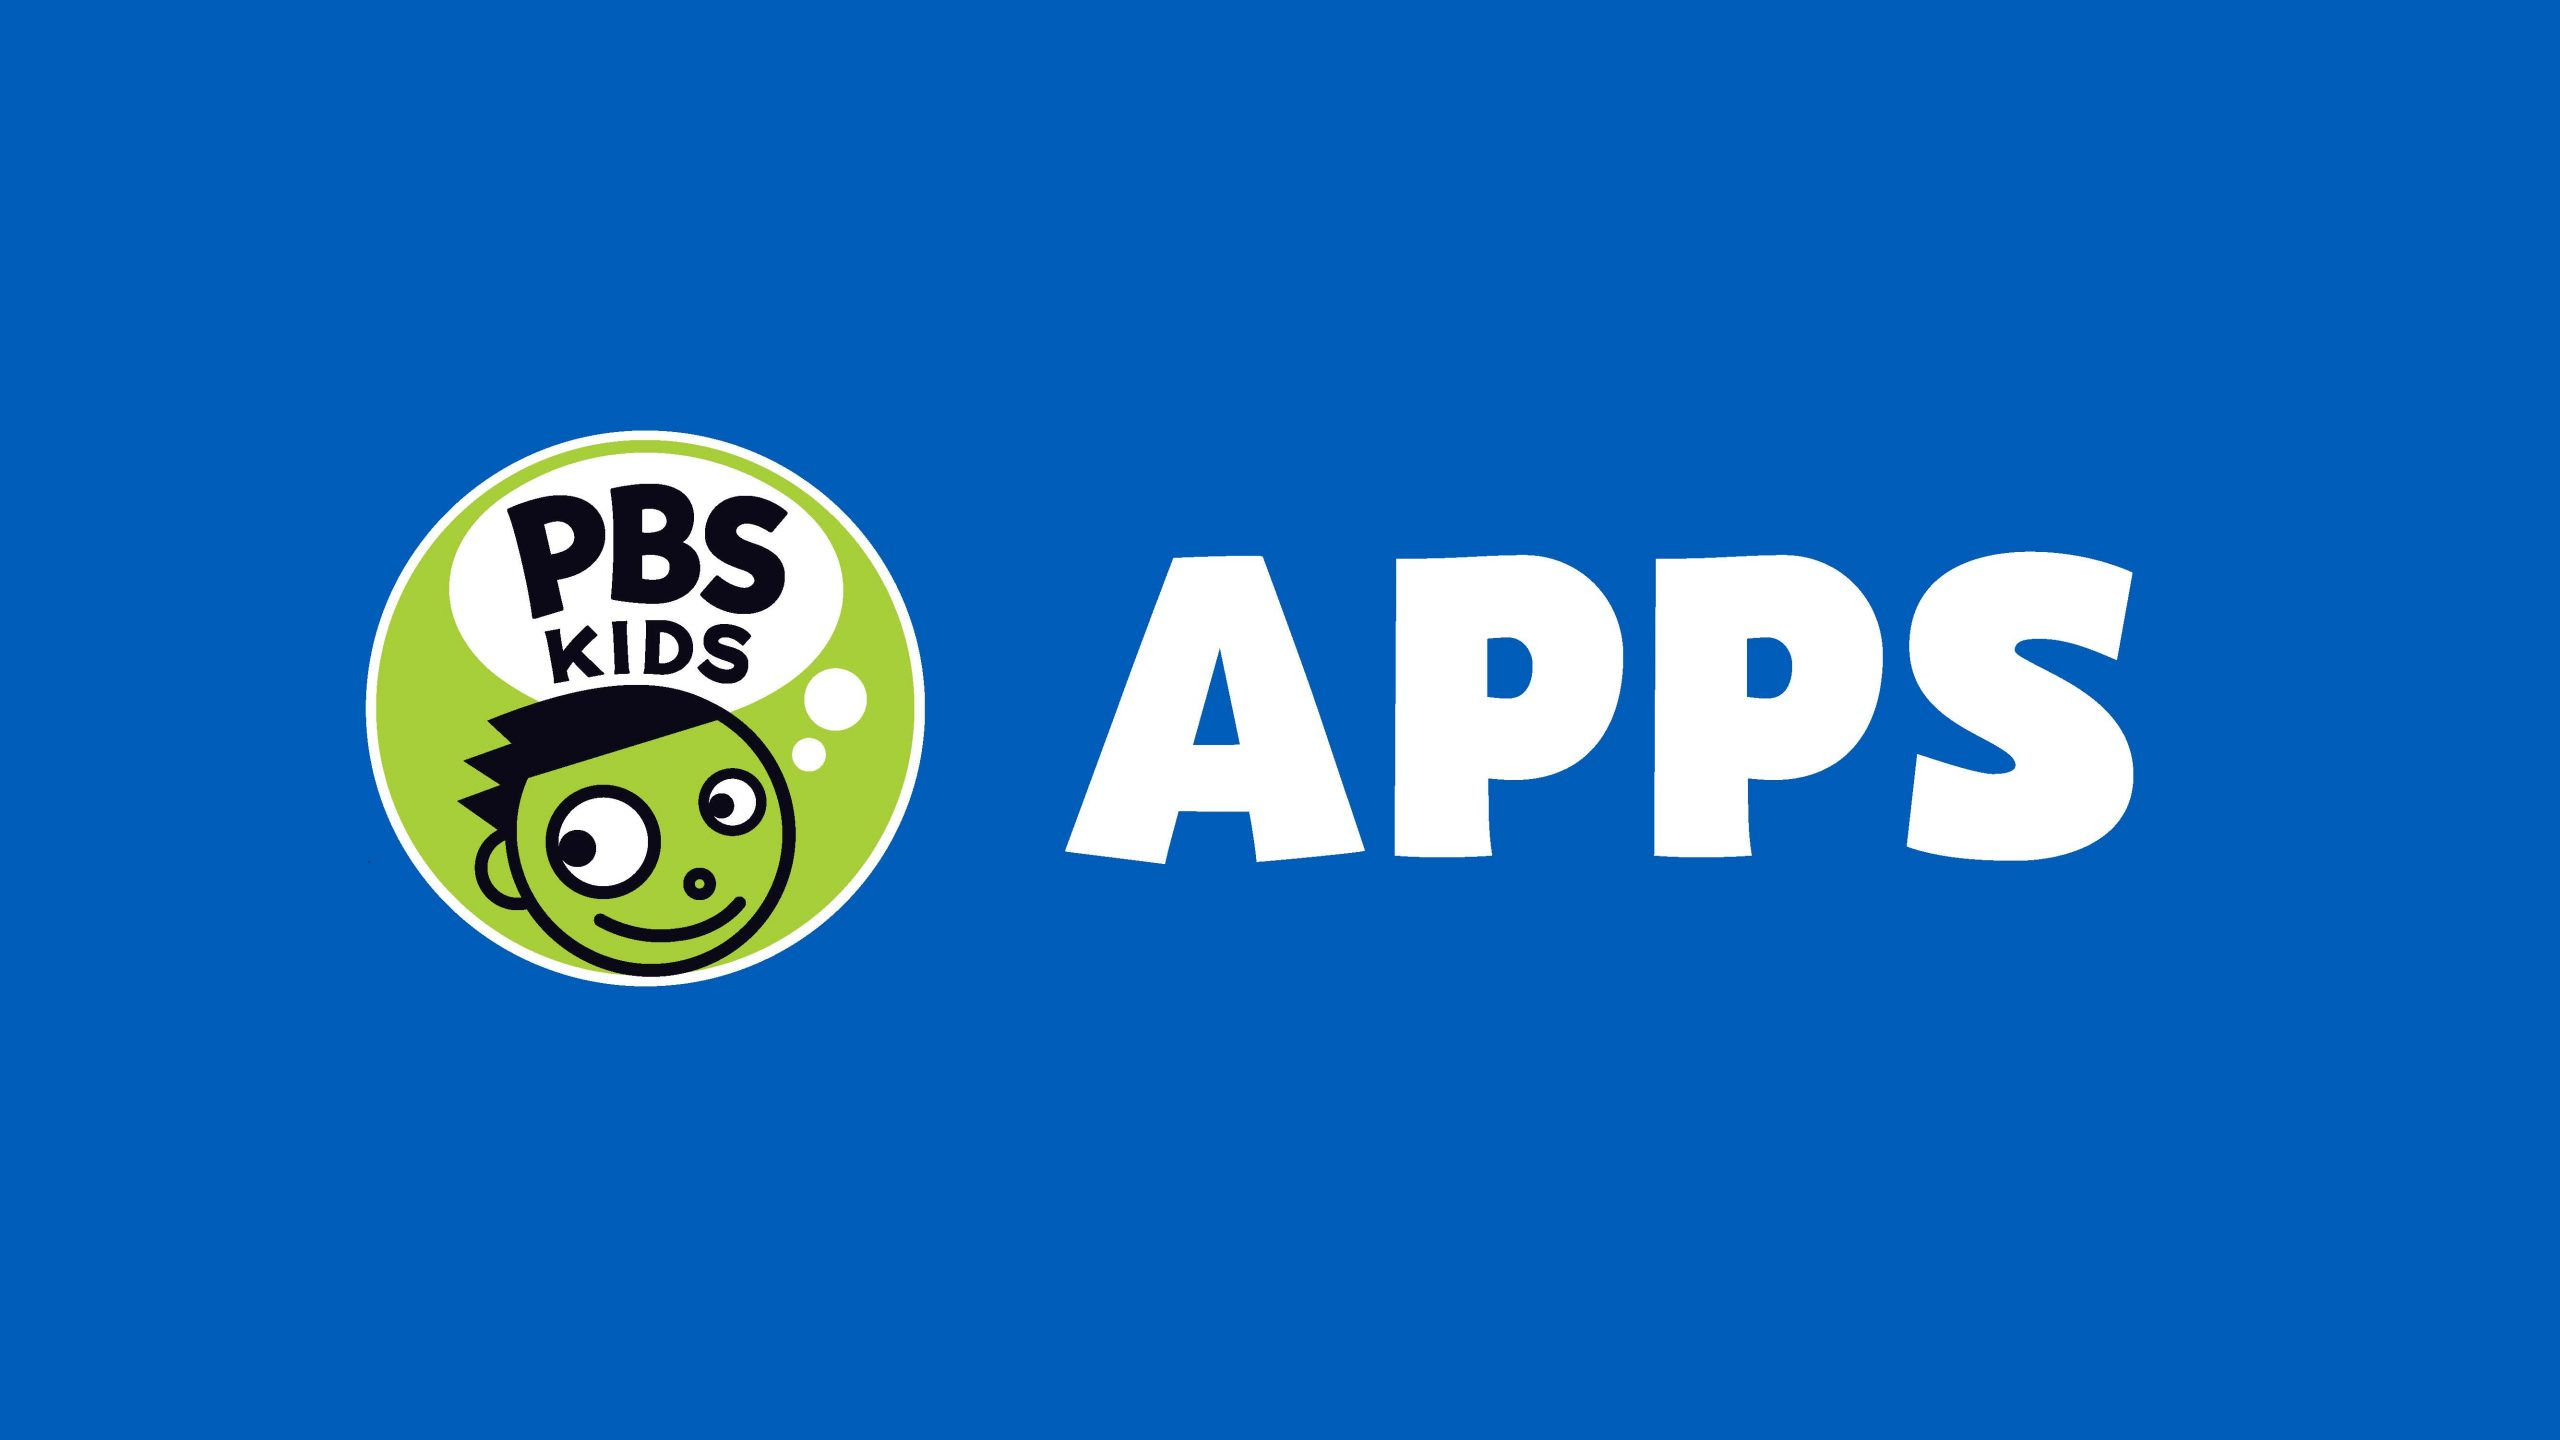 PBS KIDS logo with the word APPS on a blue background.